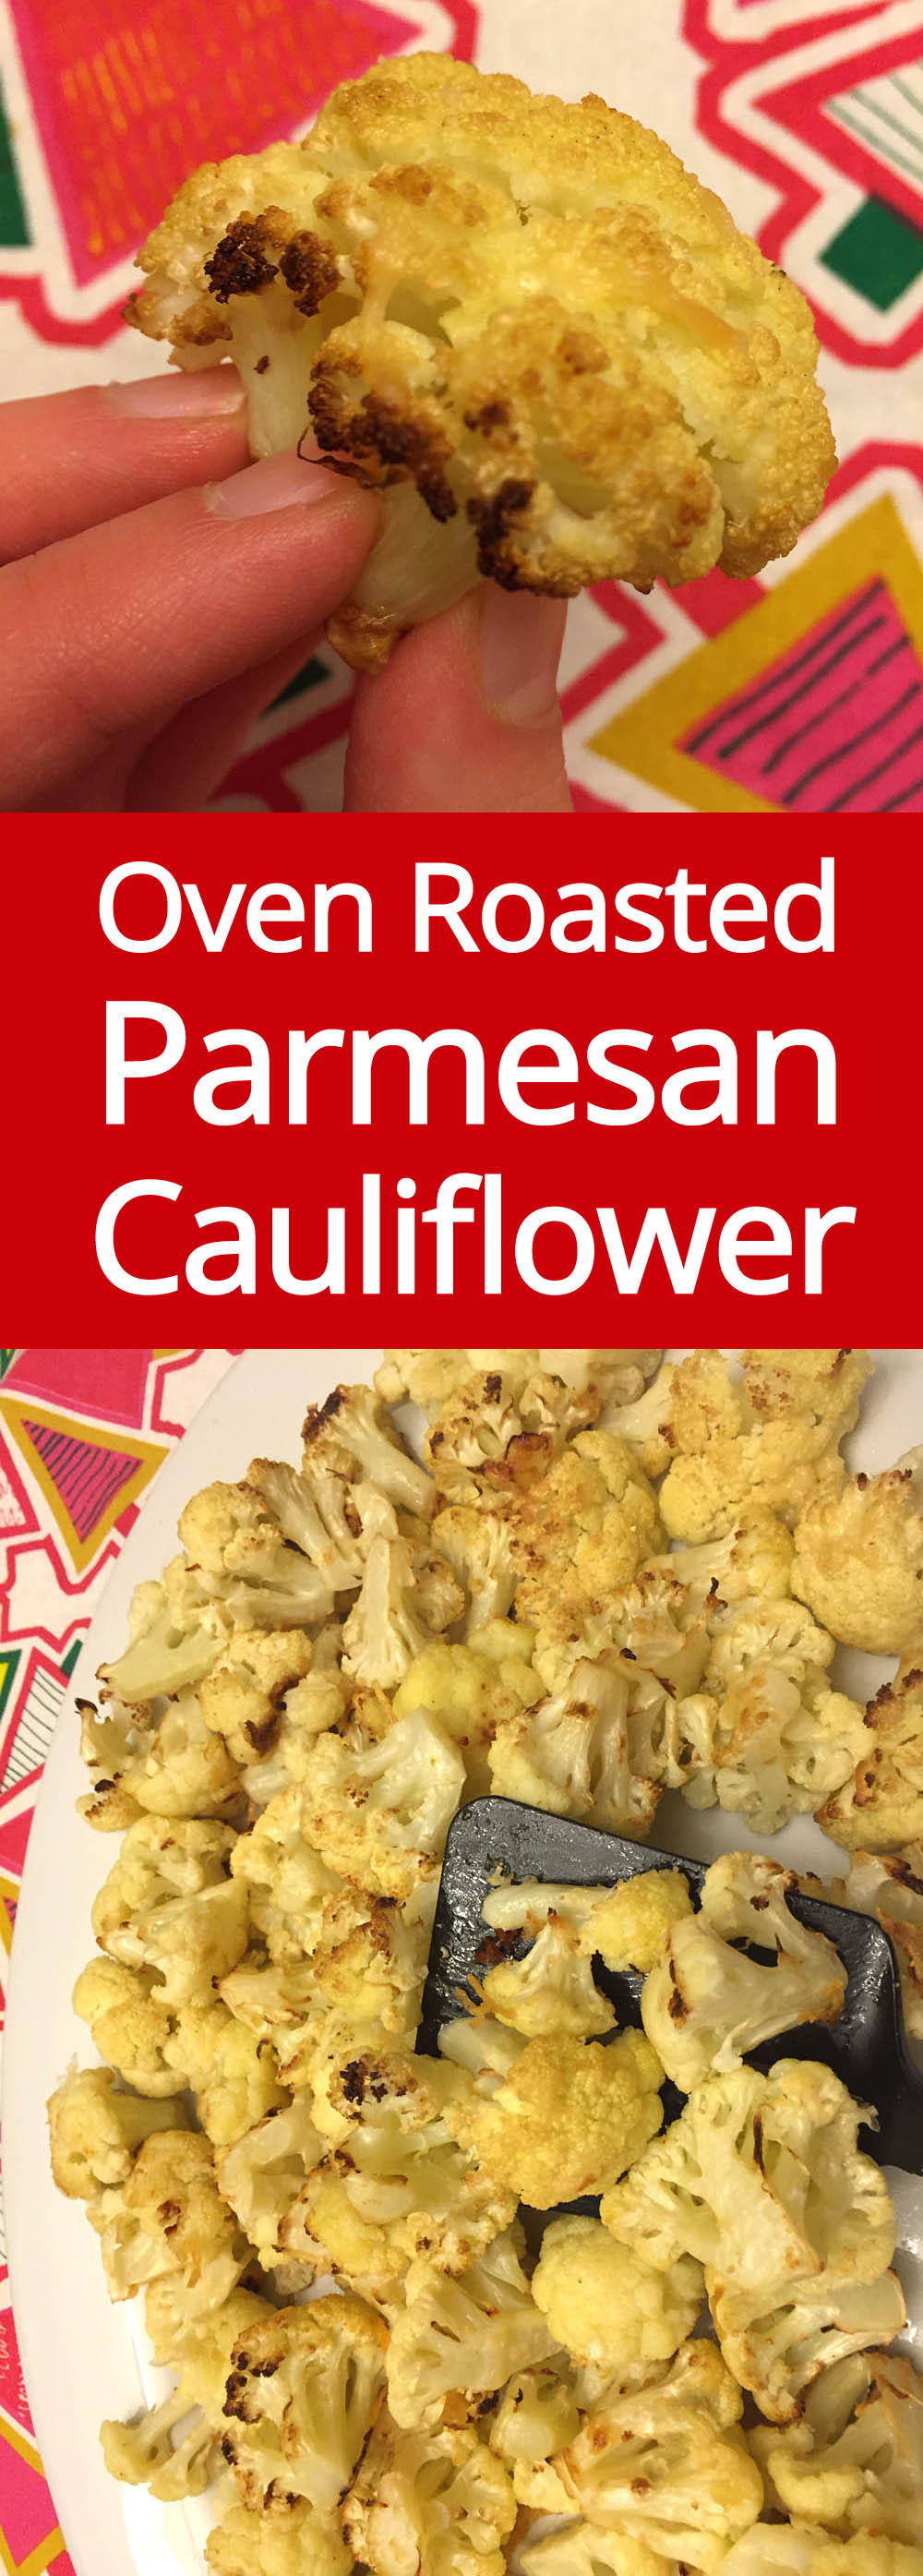 Oven Roasted Parmesan Cauliflower Recipe